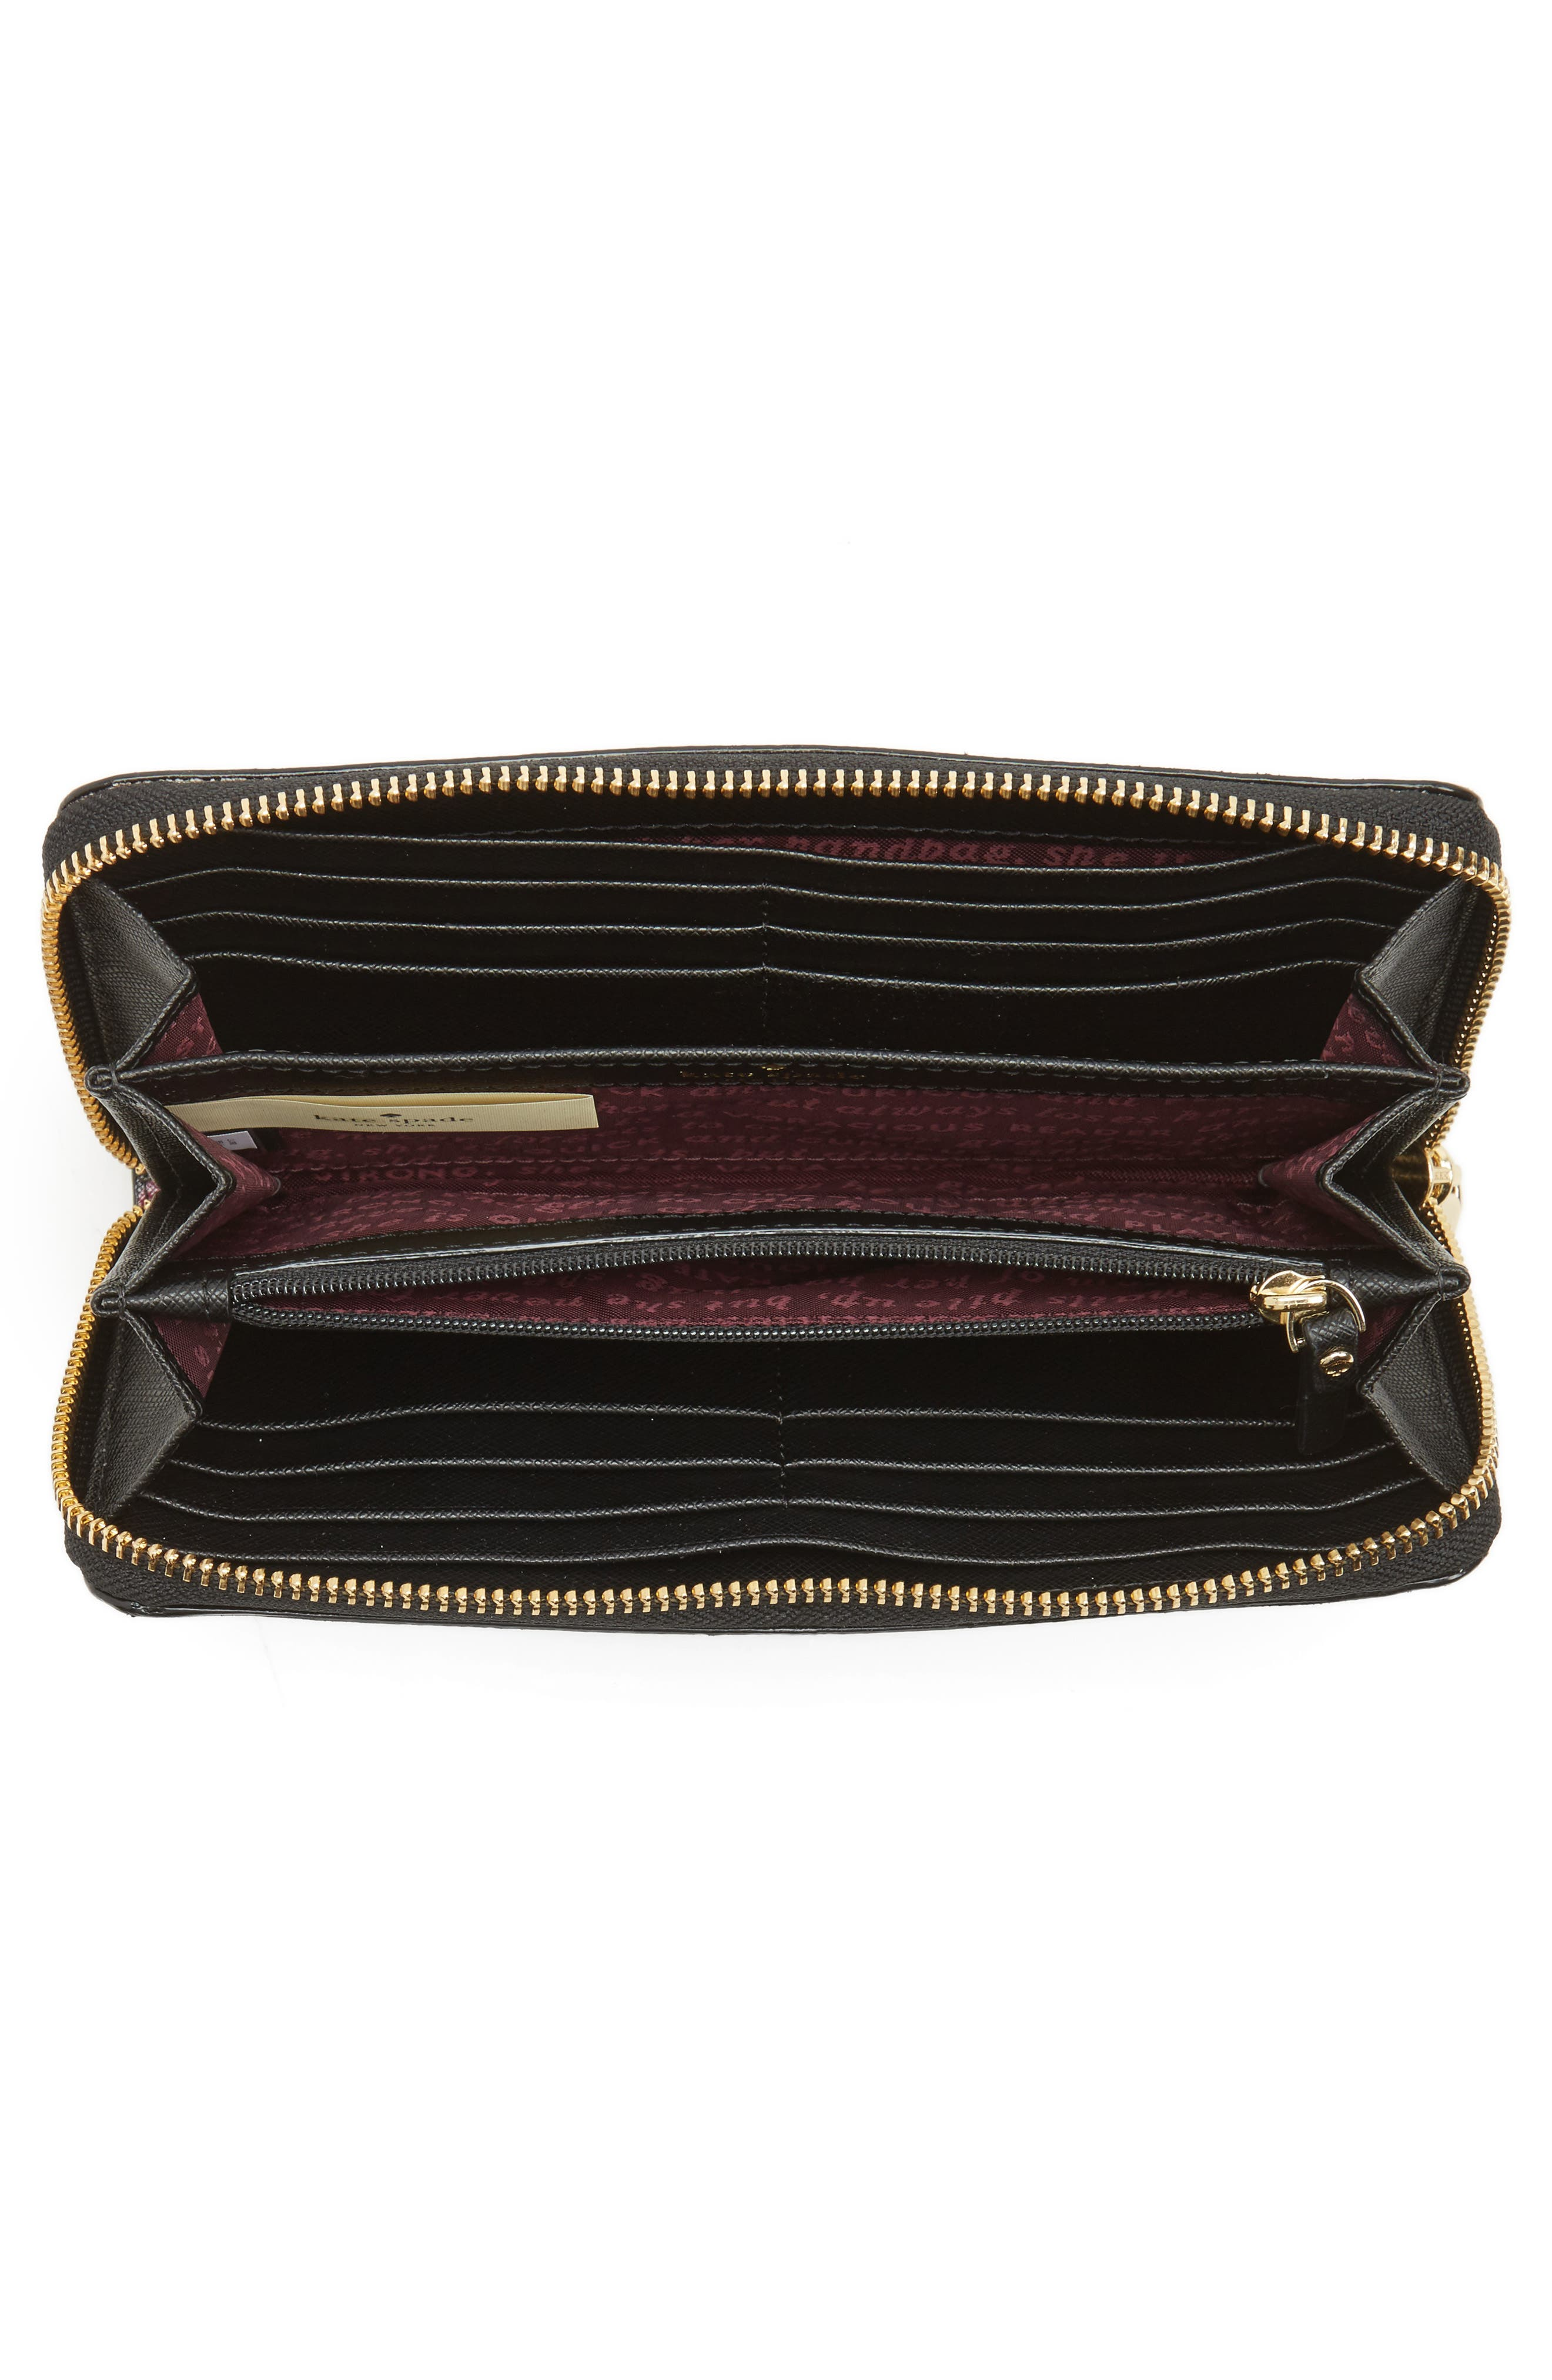 cameron street - lacey zip around wallet,                             Alternate thumbnail 2, color,                             001